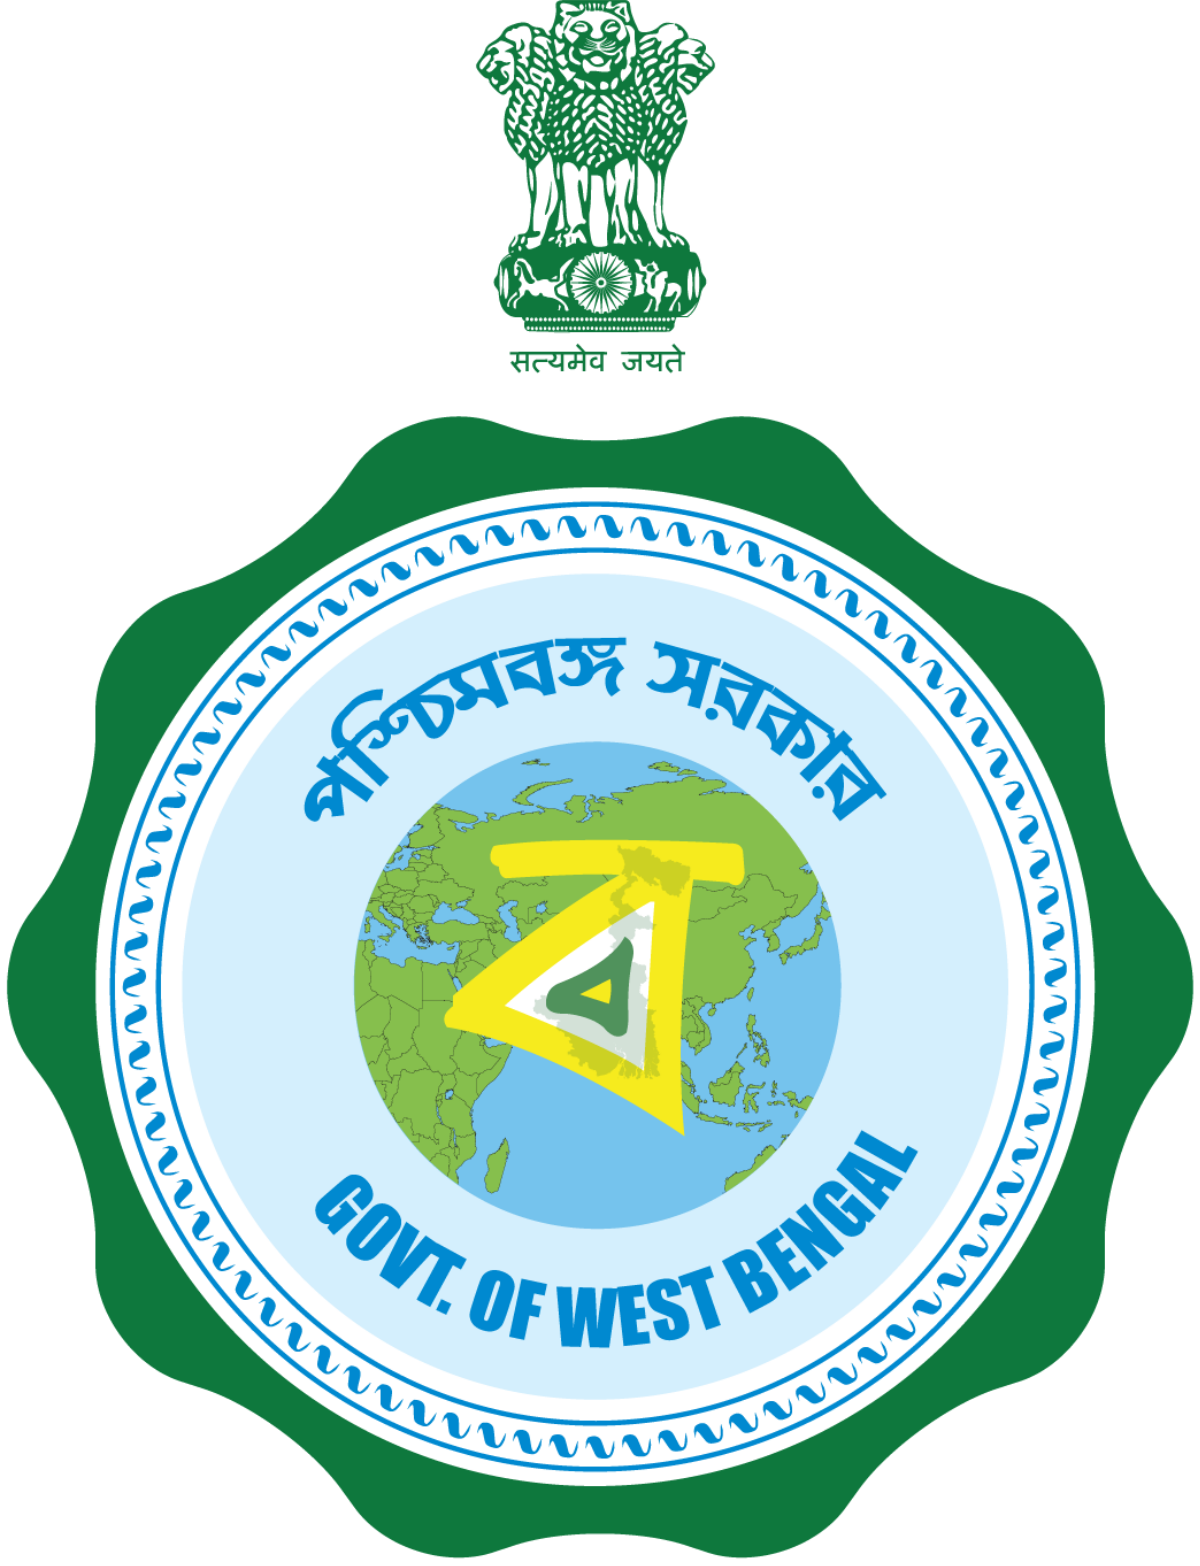 Emblem_of_GovtofWB